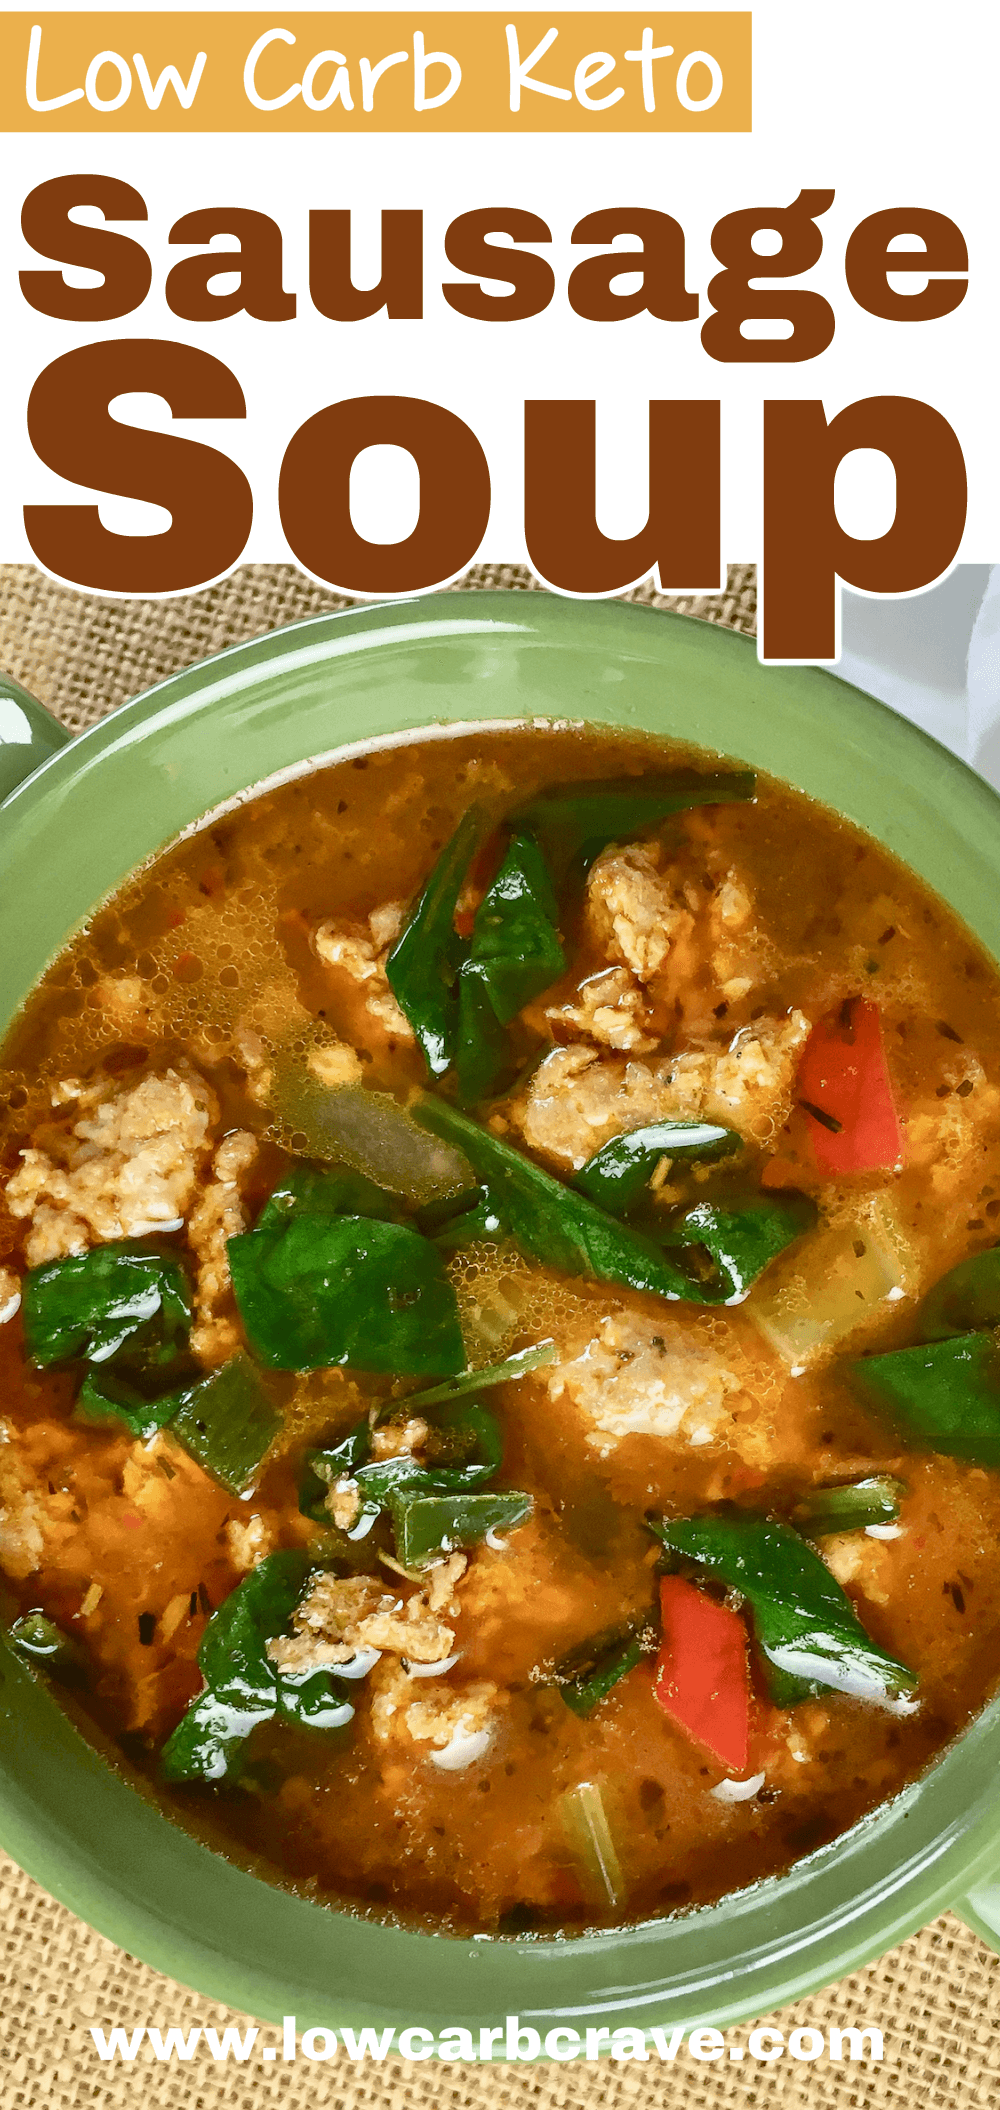 Keto Sausage Soup With Peppers & Spinach #porksausages